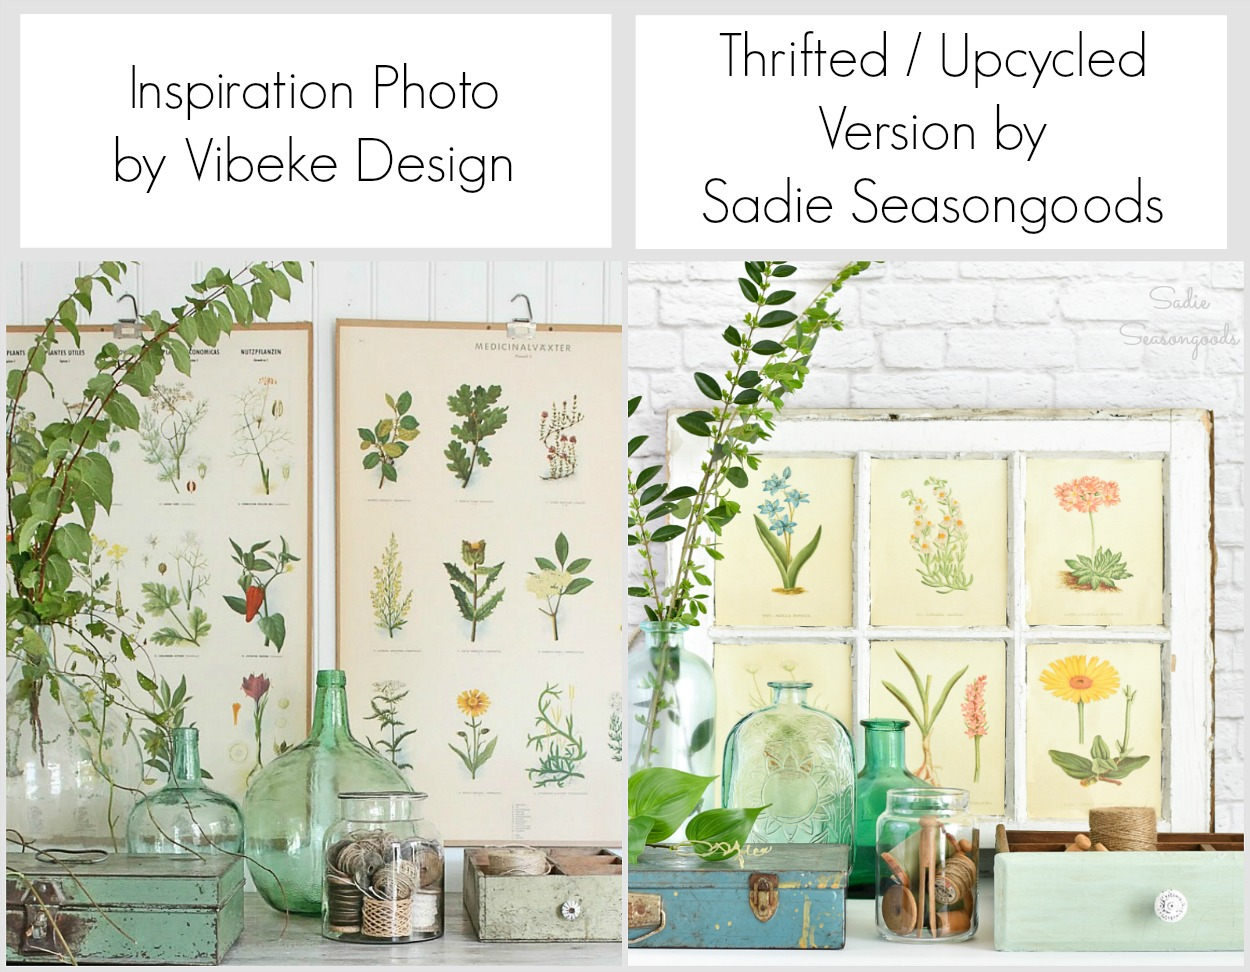 Thrift the Look for Garden Decor or Botanical Decor with thrifted pieces and upcycled crafts